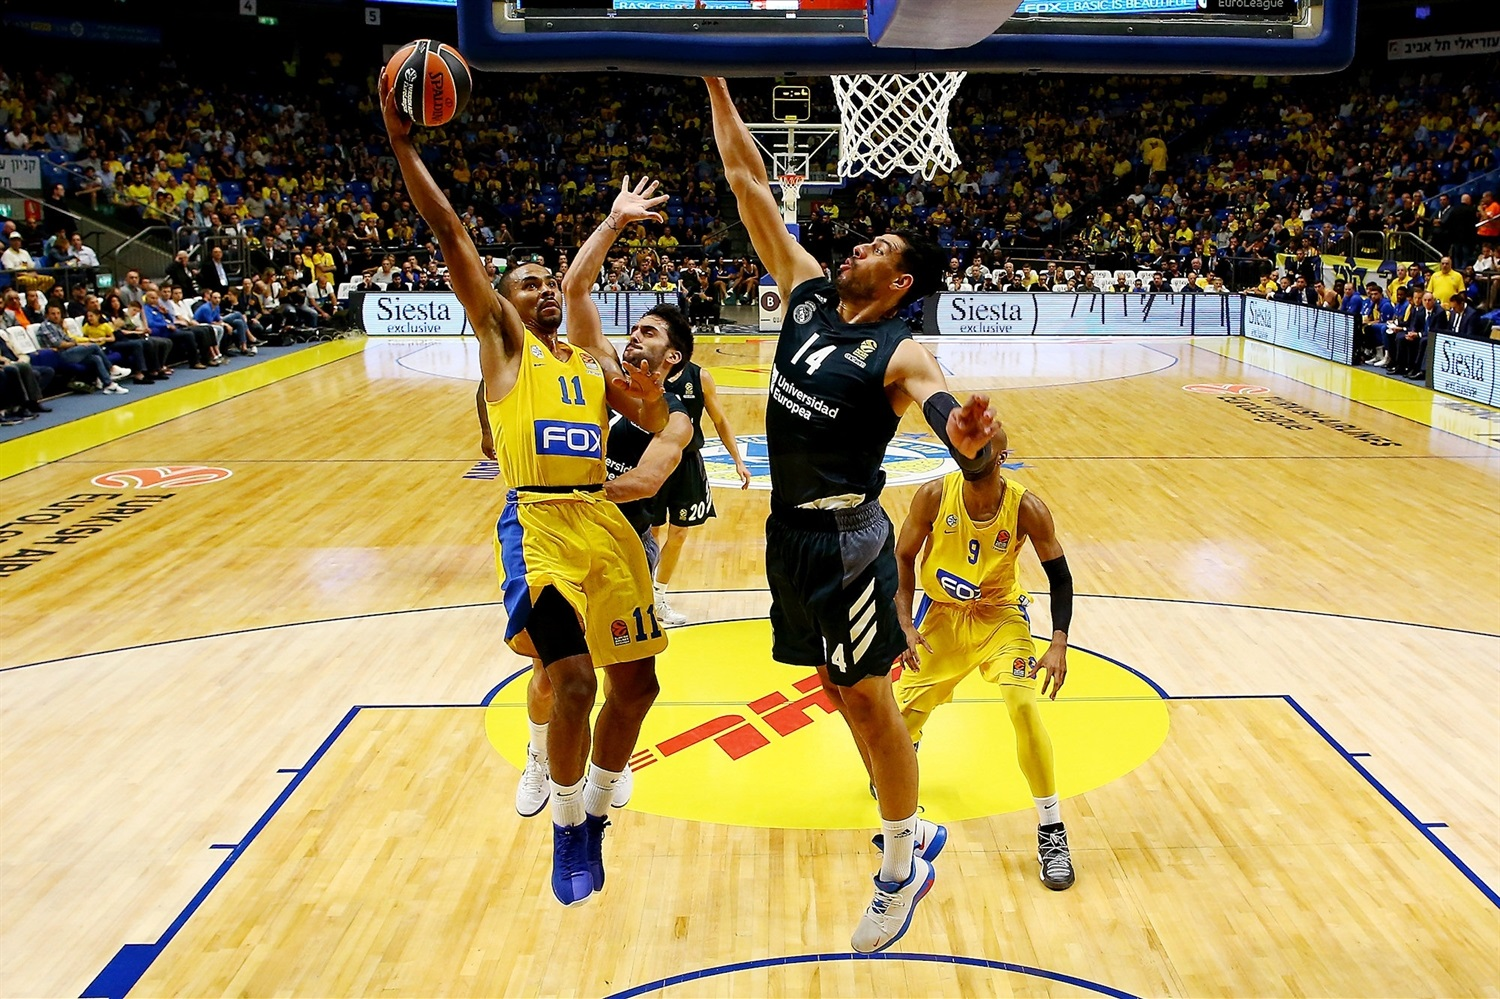 Ramon Sessions - Maccabi FOX Tel Aviv - EB18